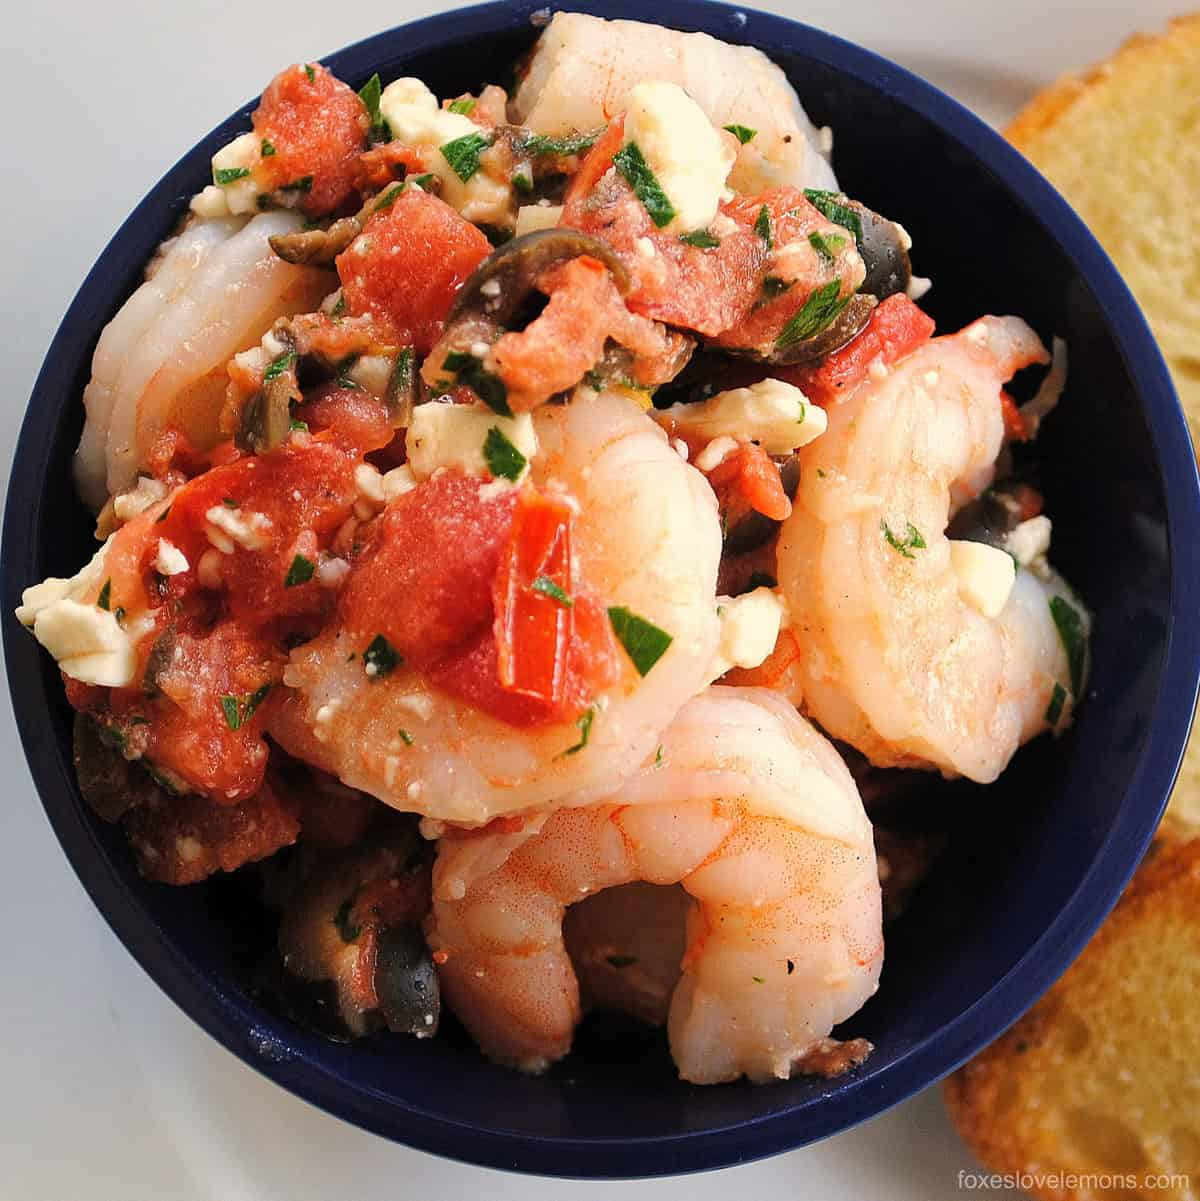 Greek Shrimp Bruschetta - Perfect for a party! Sauteed shrimp with olives, tomato, feta and capers. Serve with crunchy bruschetta.